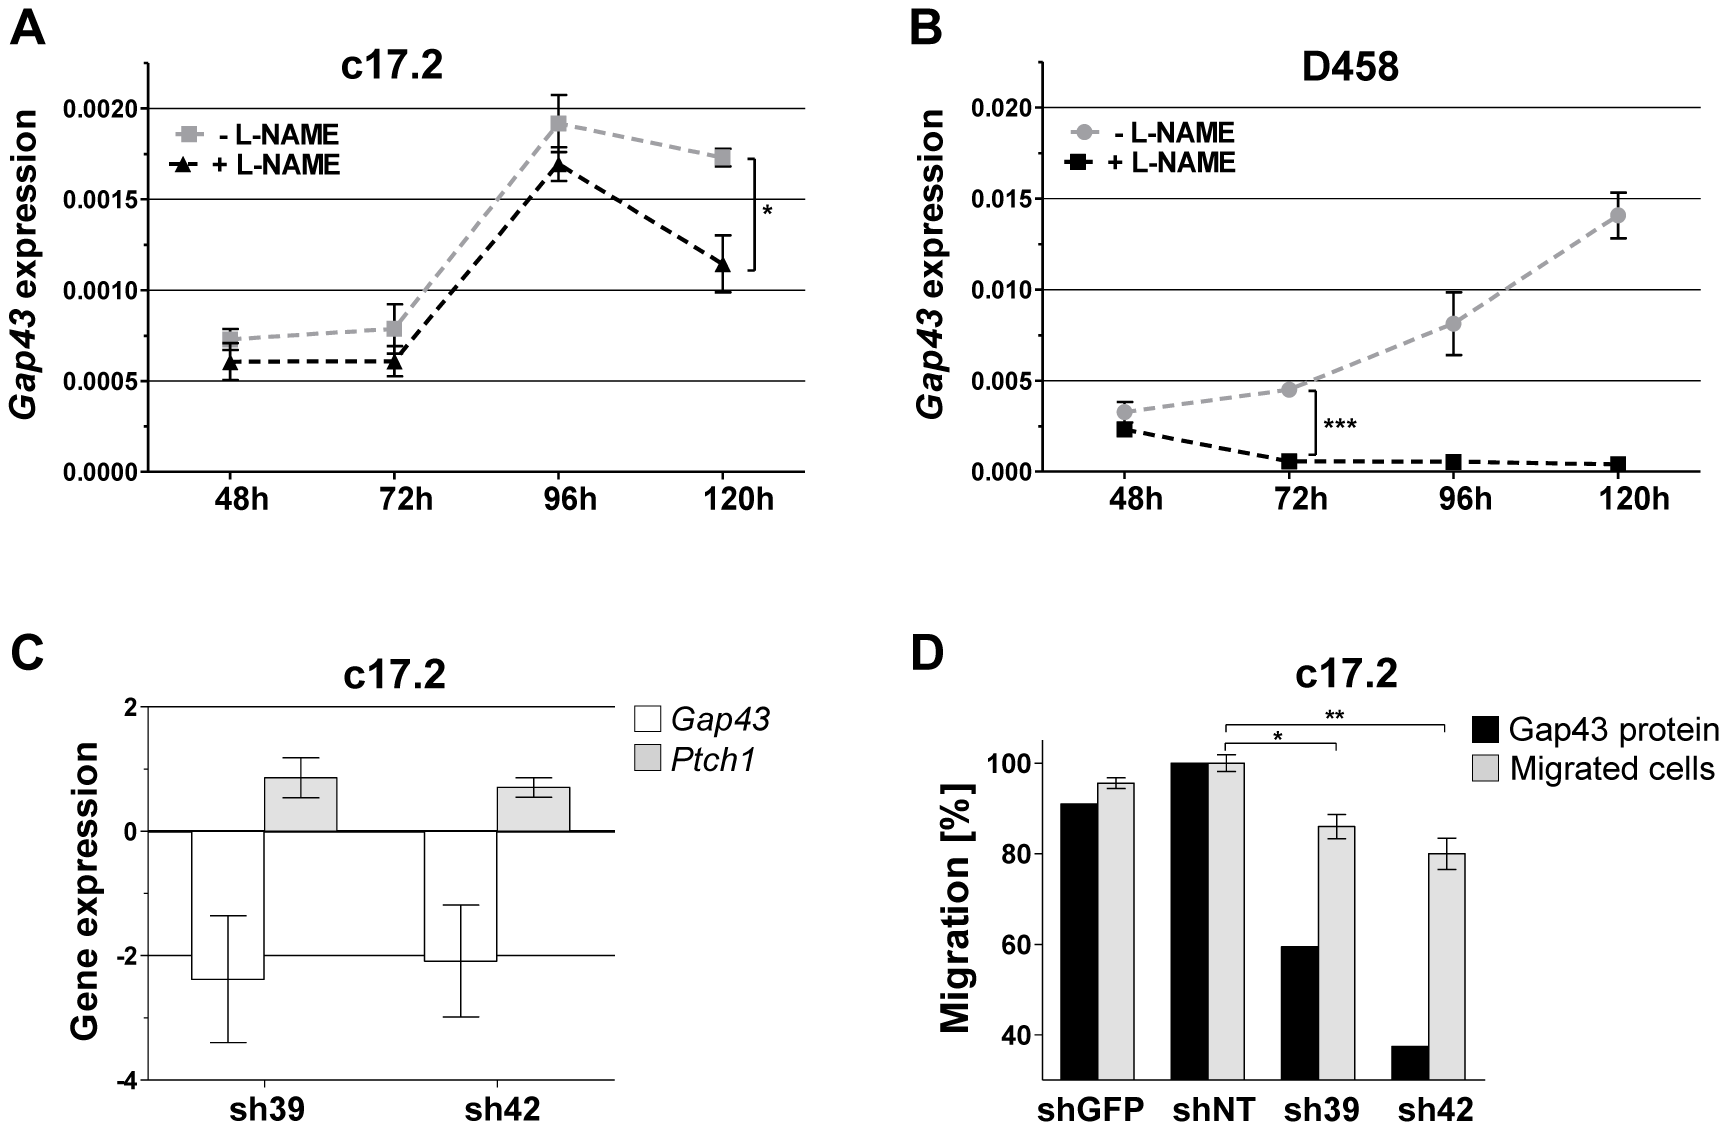 Characteristics and functional implication of Gap43 expression in cell culture.